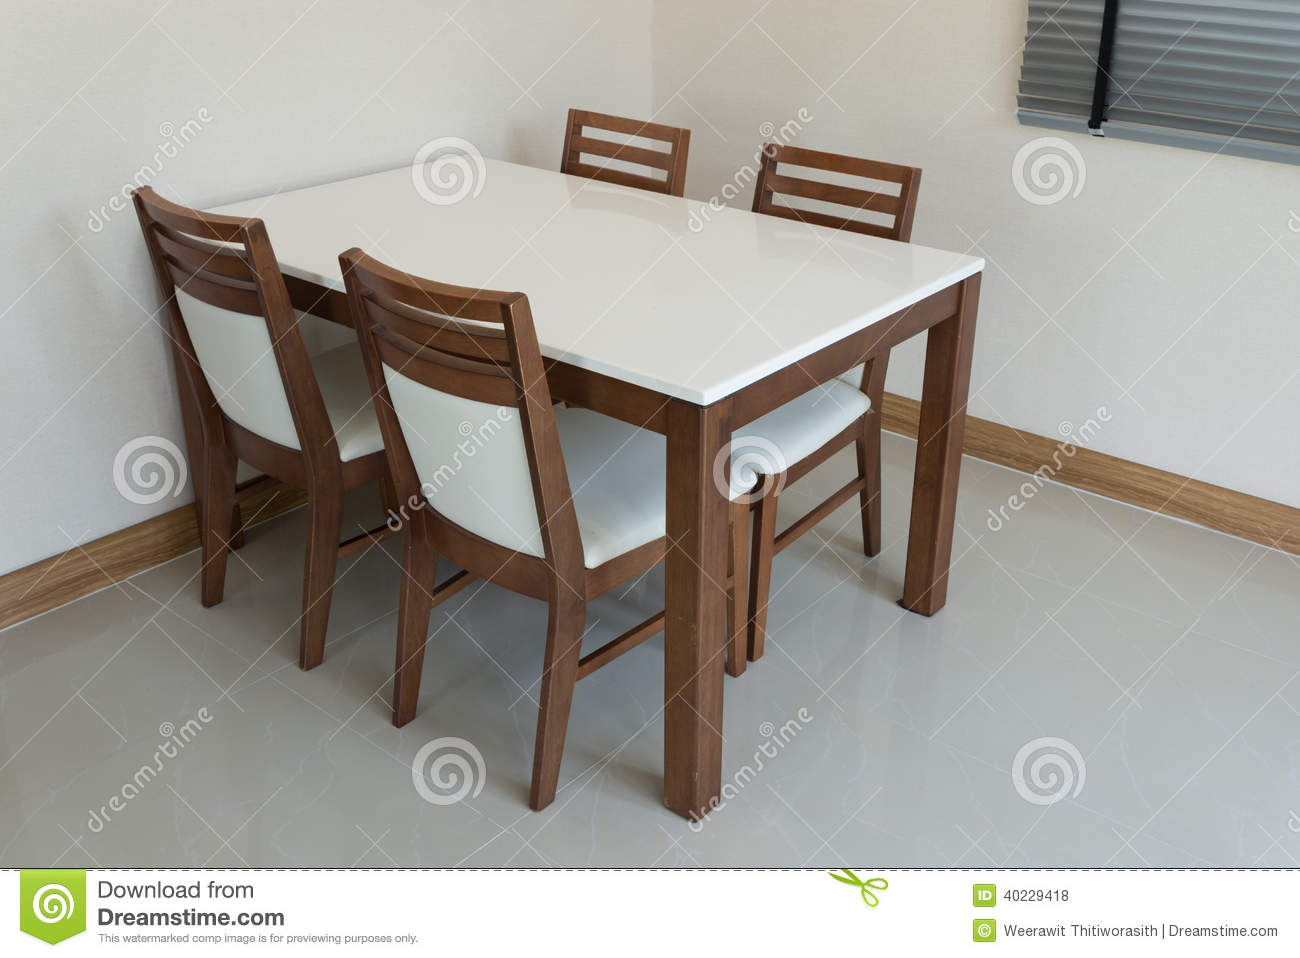 Table de salle manger en bois photo stock image 40229418 - Table 4 personnes dimensions ...